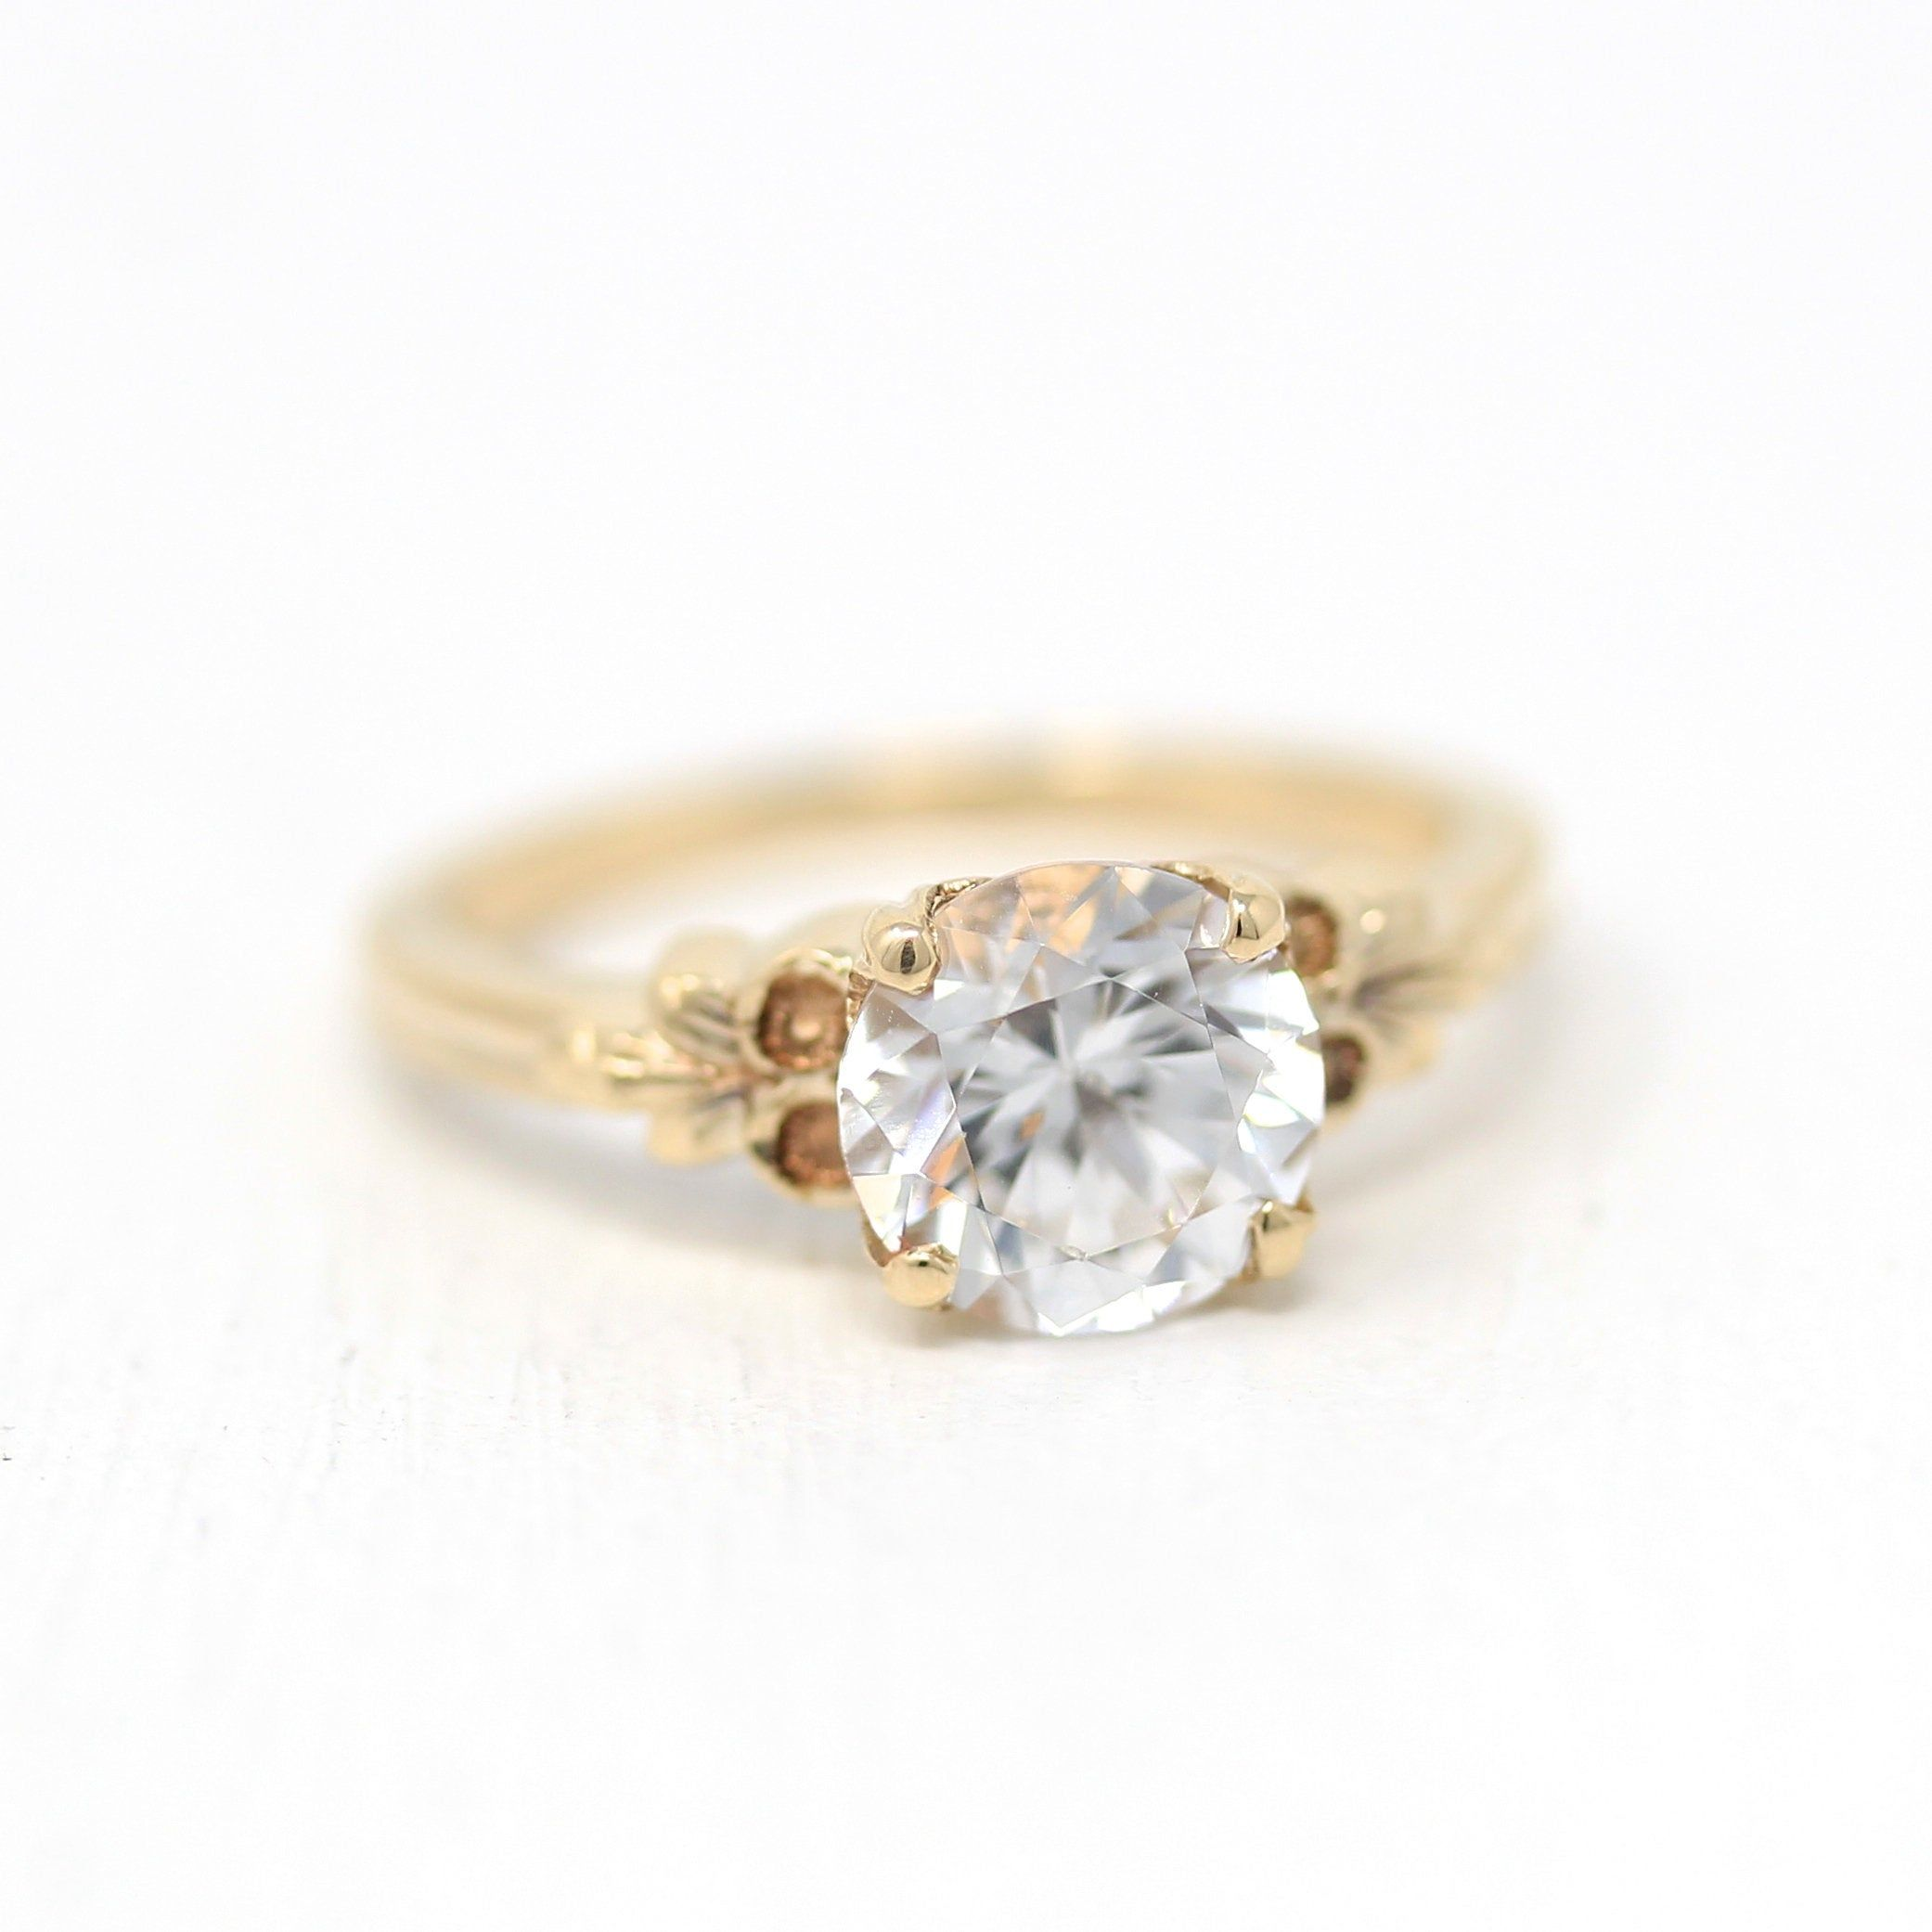 White Sapphire Ring Vintage 1940s 10k Yellow Gold Engagement Size 5 Alternative Colorless Genuine 2 08 Cts Gemstone Flower Fine Jewelry In 2020 Vintage Sapphire Ring White Sapphire Ring Yellow Gold Engagement